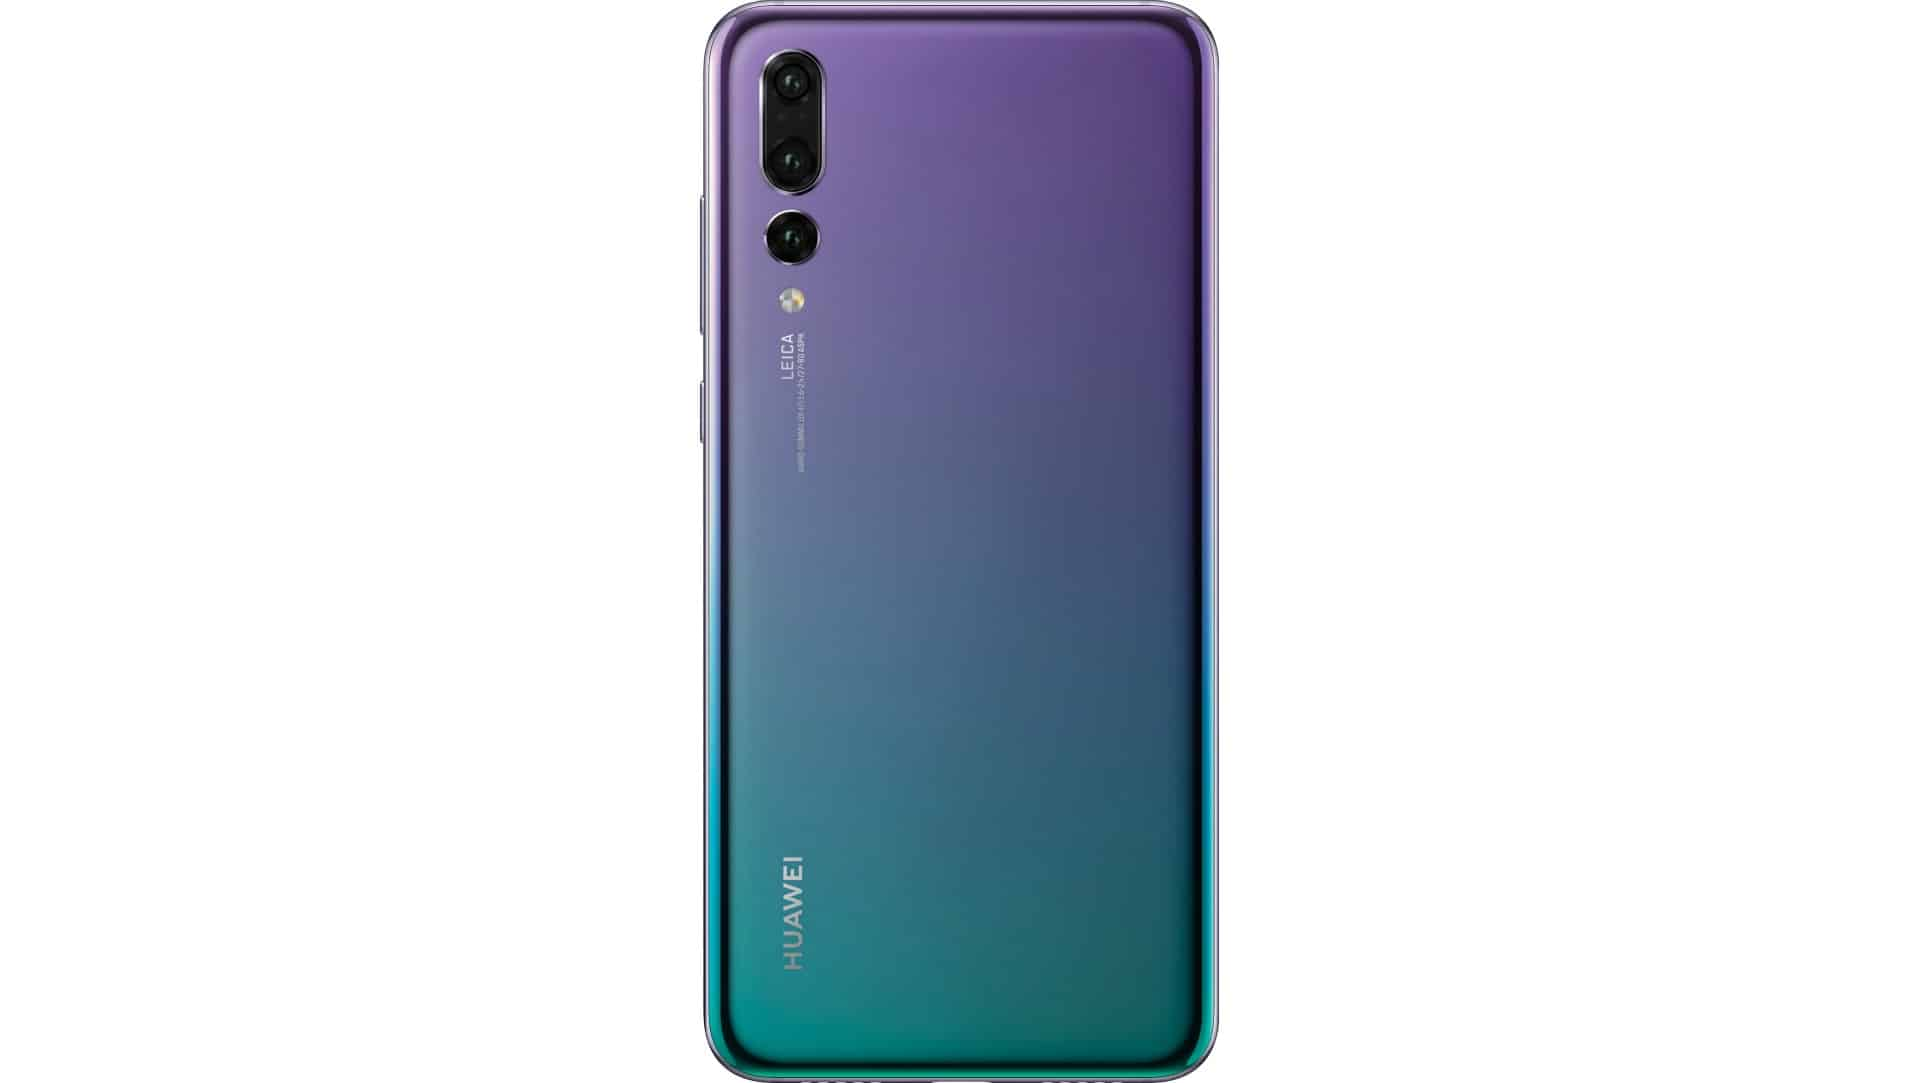 Third Huawei P20 Pro Color Leaks With Chromatic Style